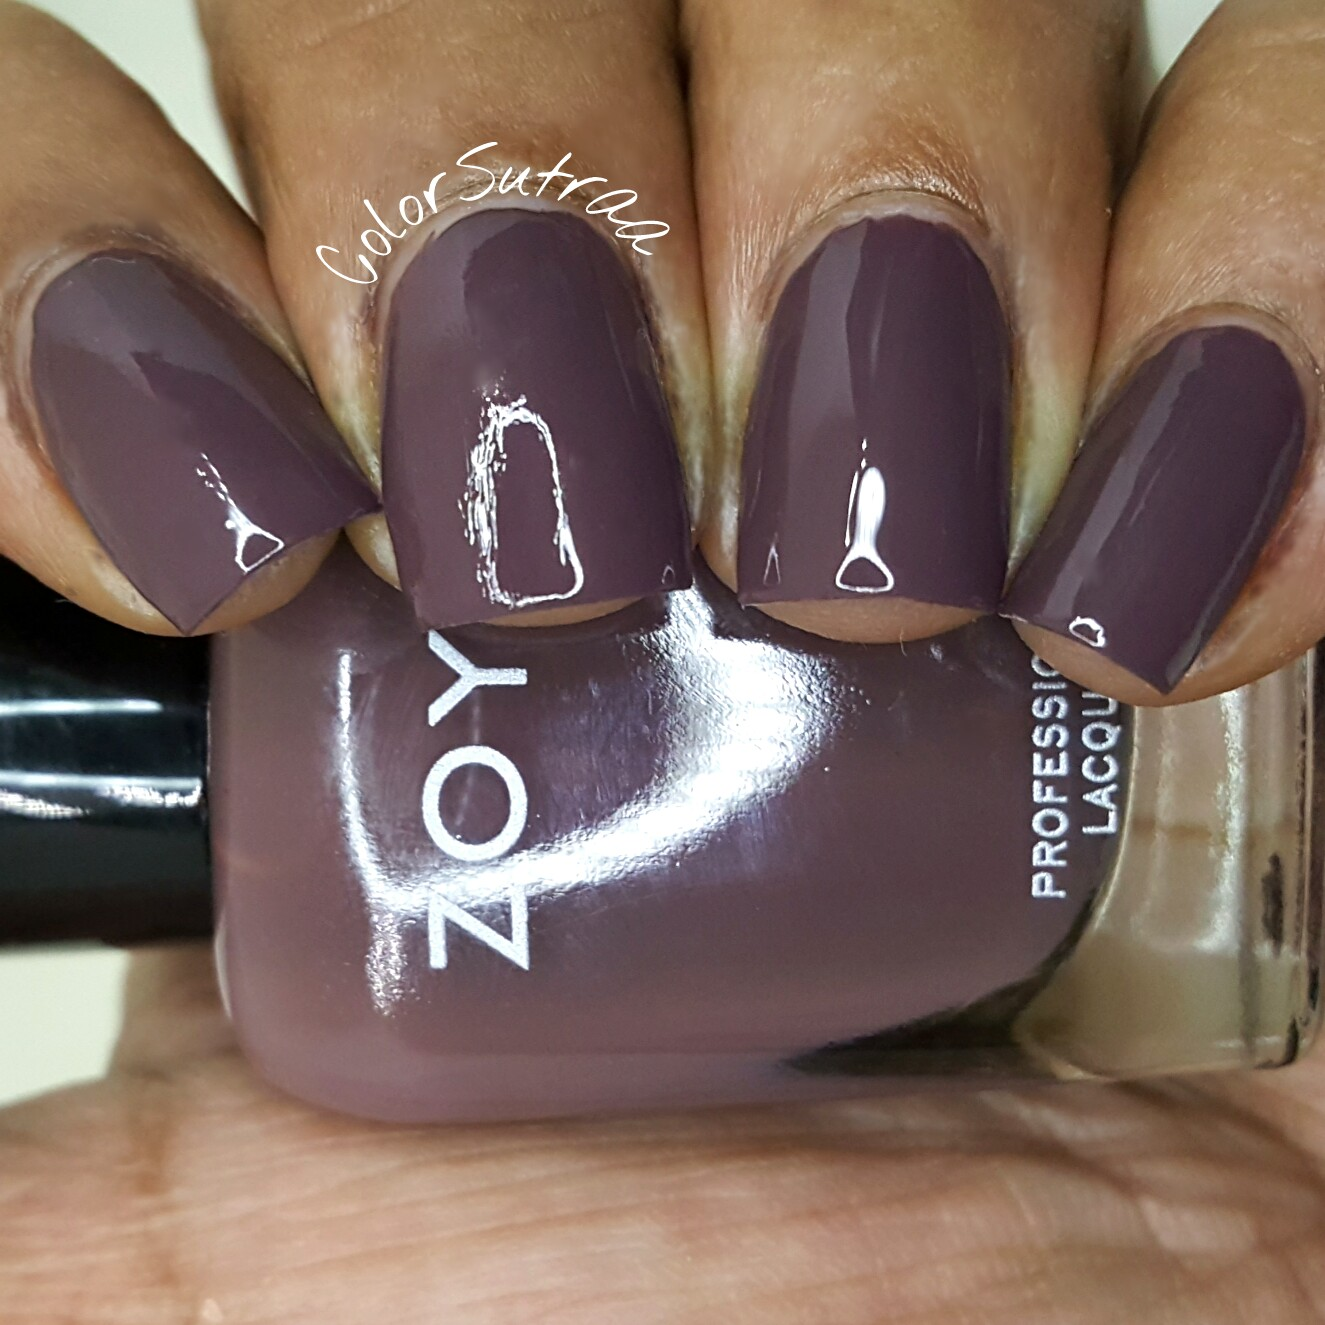 Zoya Nail Polish Naturel 3 Collection Swatches And Review Colorsutraa Jill Beauty Lip Matte 13 Purplish Plum Debbie Is Described As A Brown Cream In The Classic 2 Coat Coverage Formula This My Favorite From I Absolutely Love